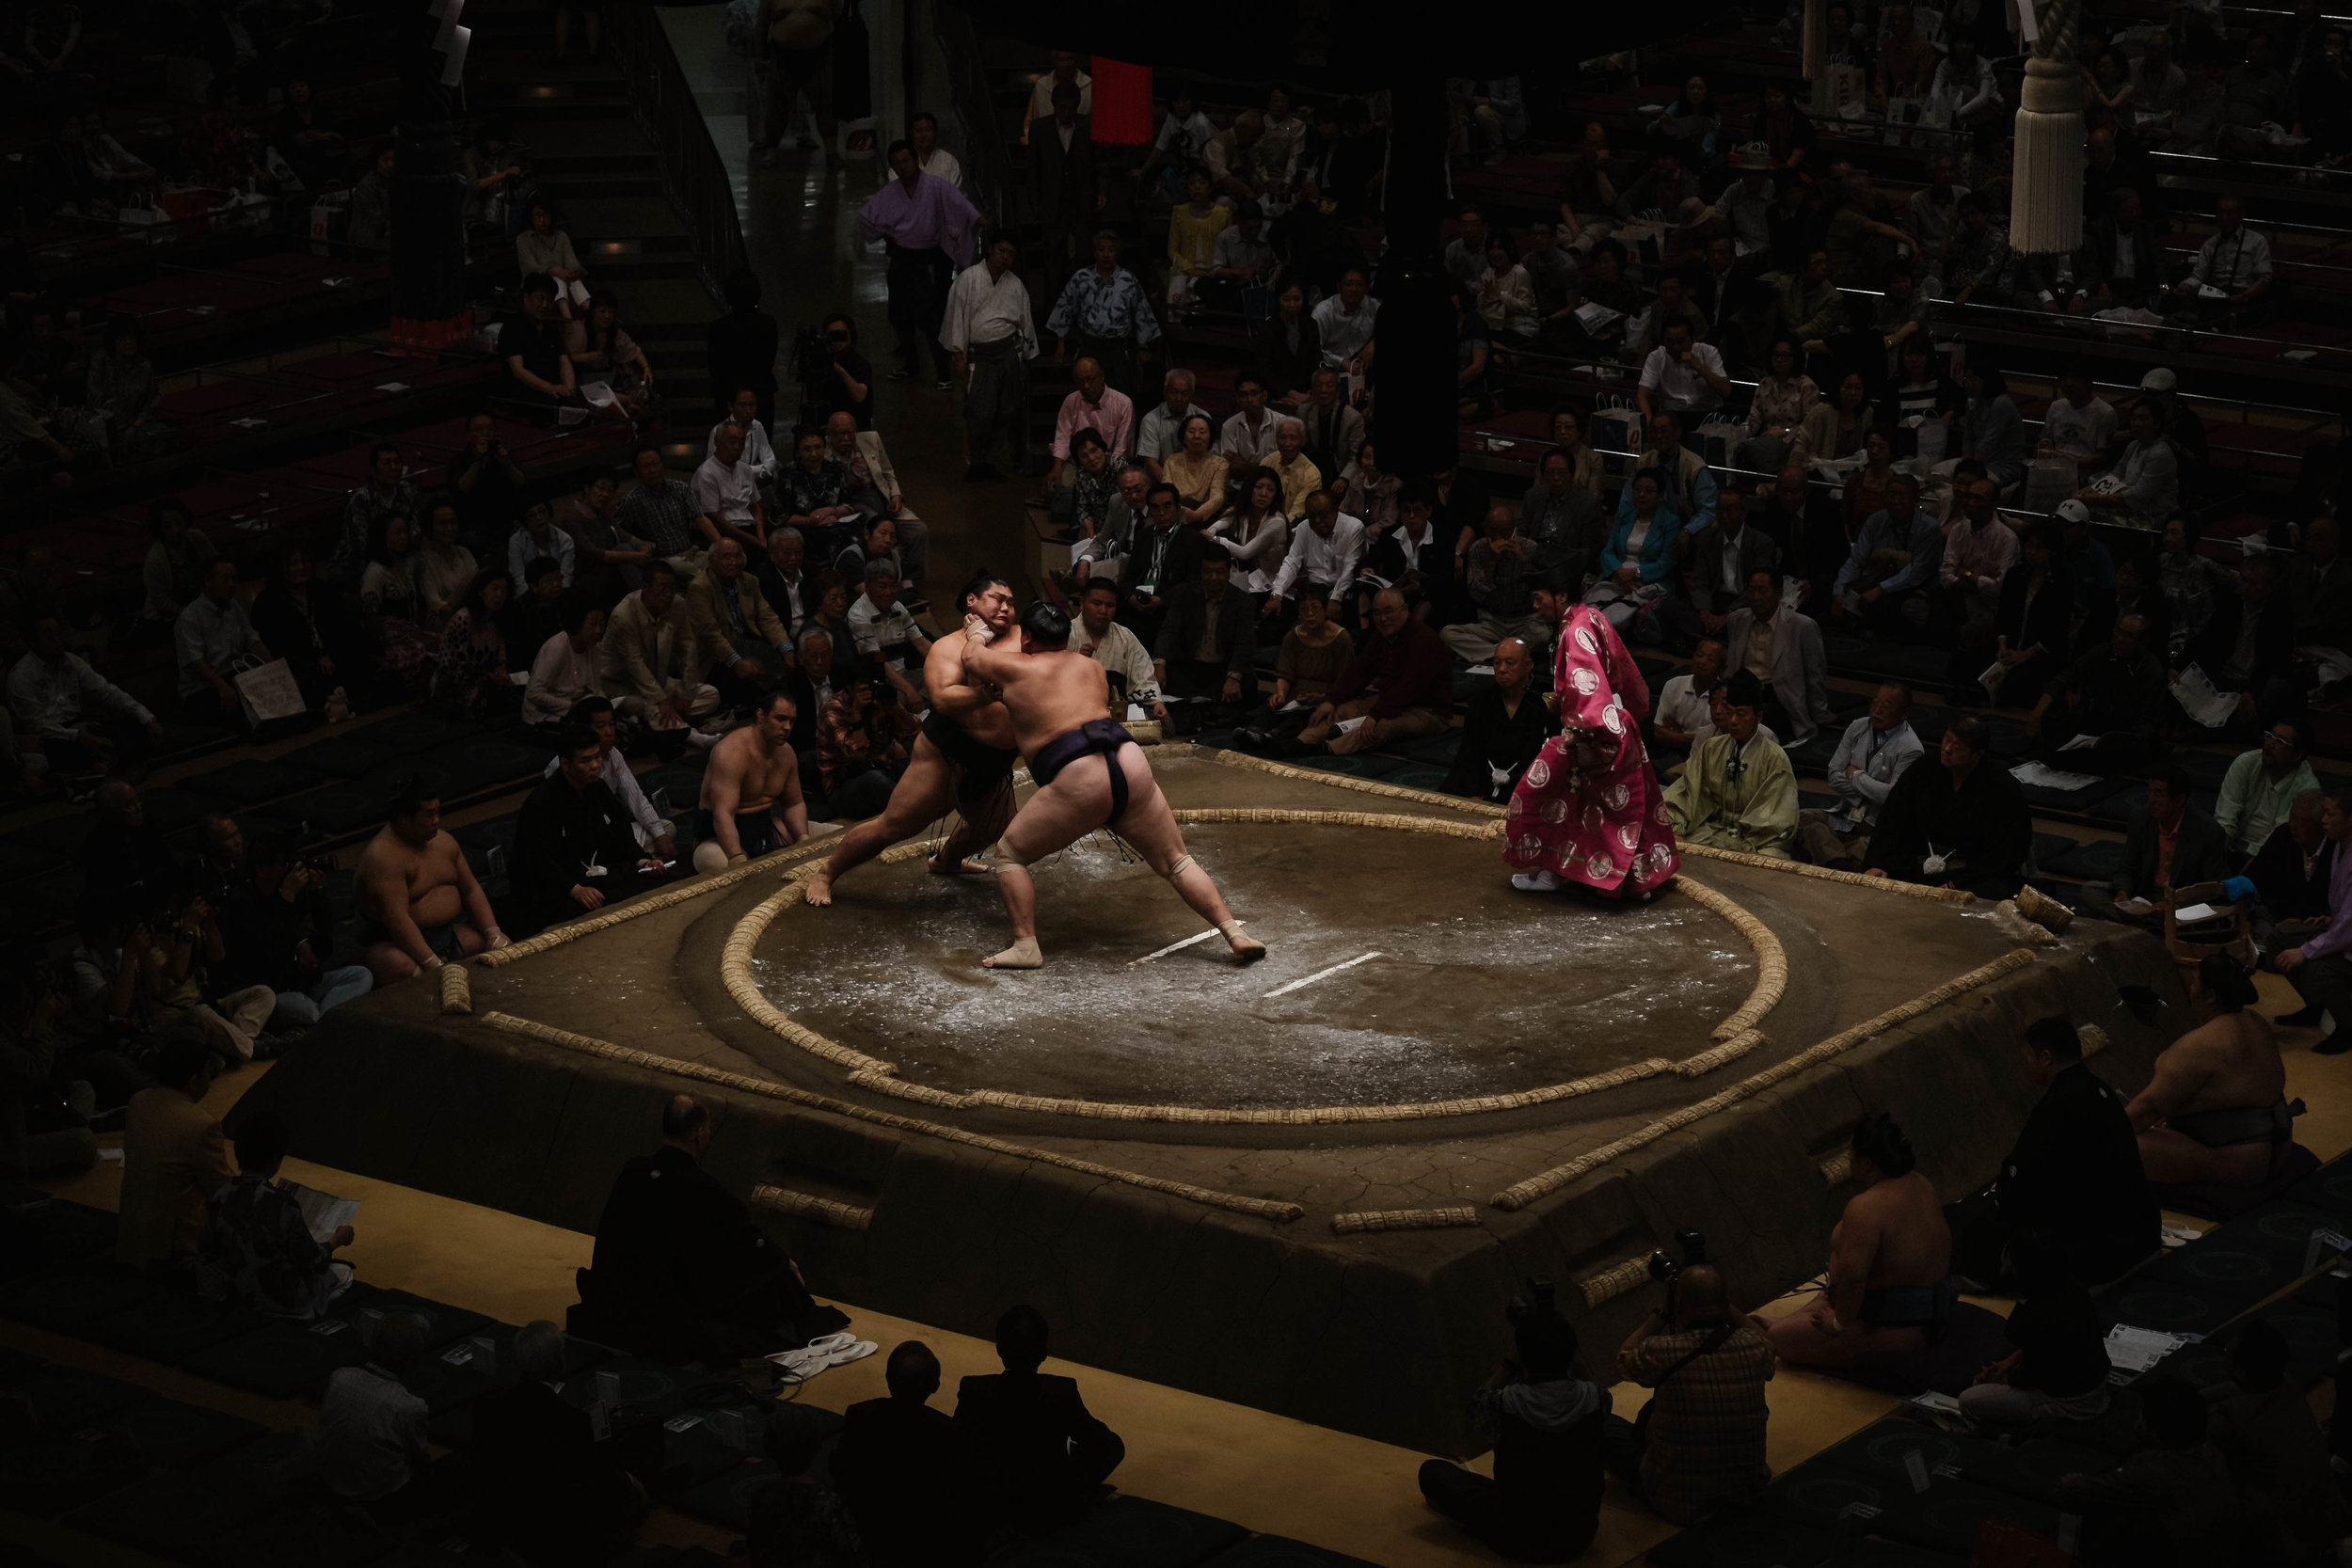 Sumo fighters going at it while the judge watches, Tokyo.